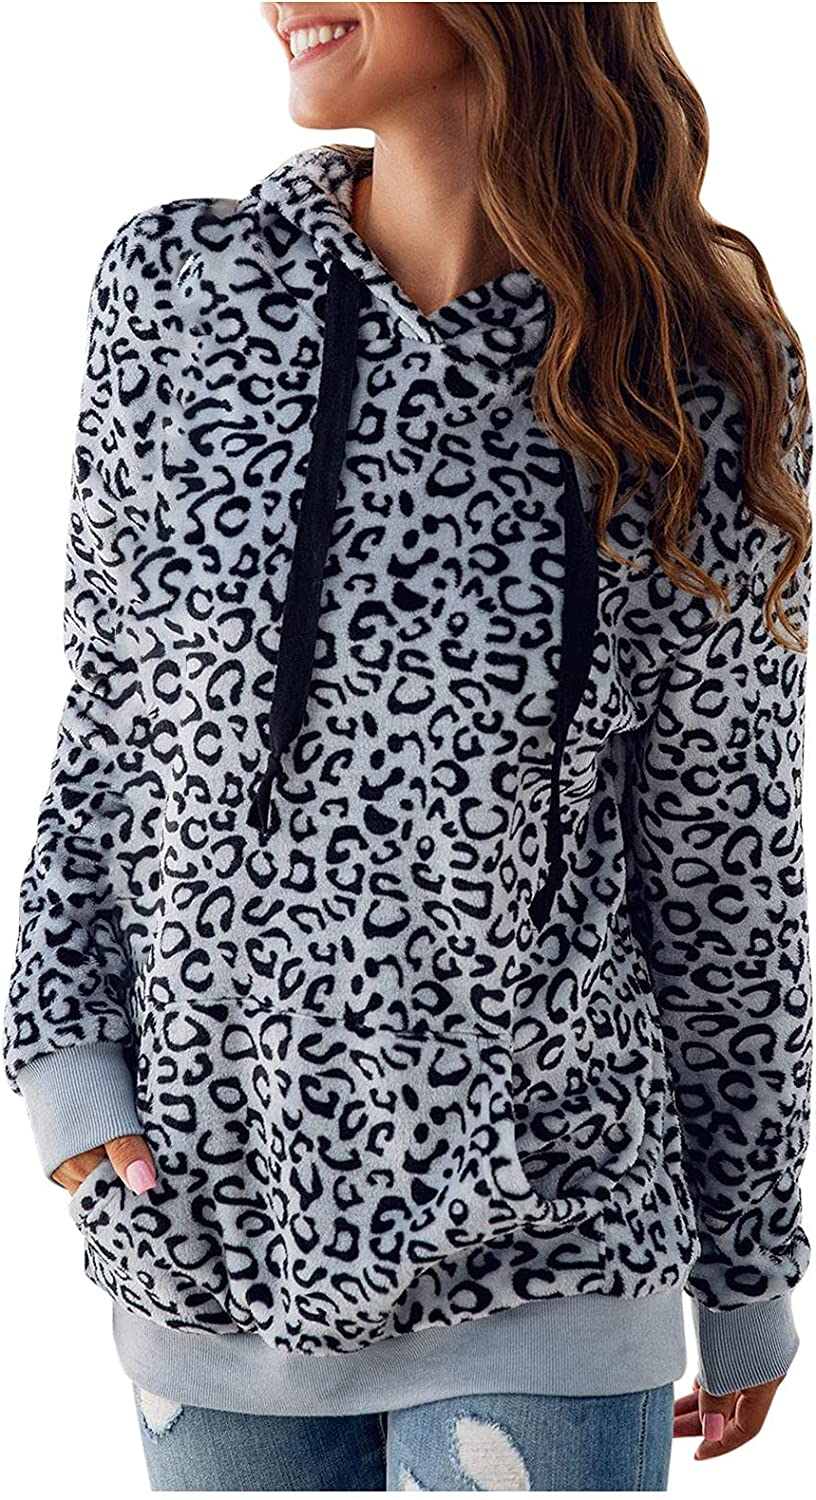 ViYW Women's Hooded Leopard Printed Blouses Shirts for Women Casual Summer Long Sleeve Tunics Top Fall Soft Teen Pullover